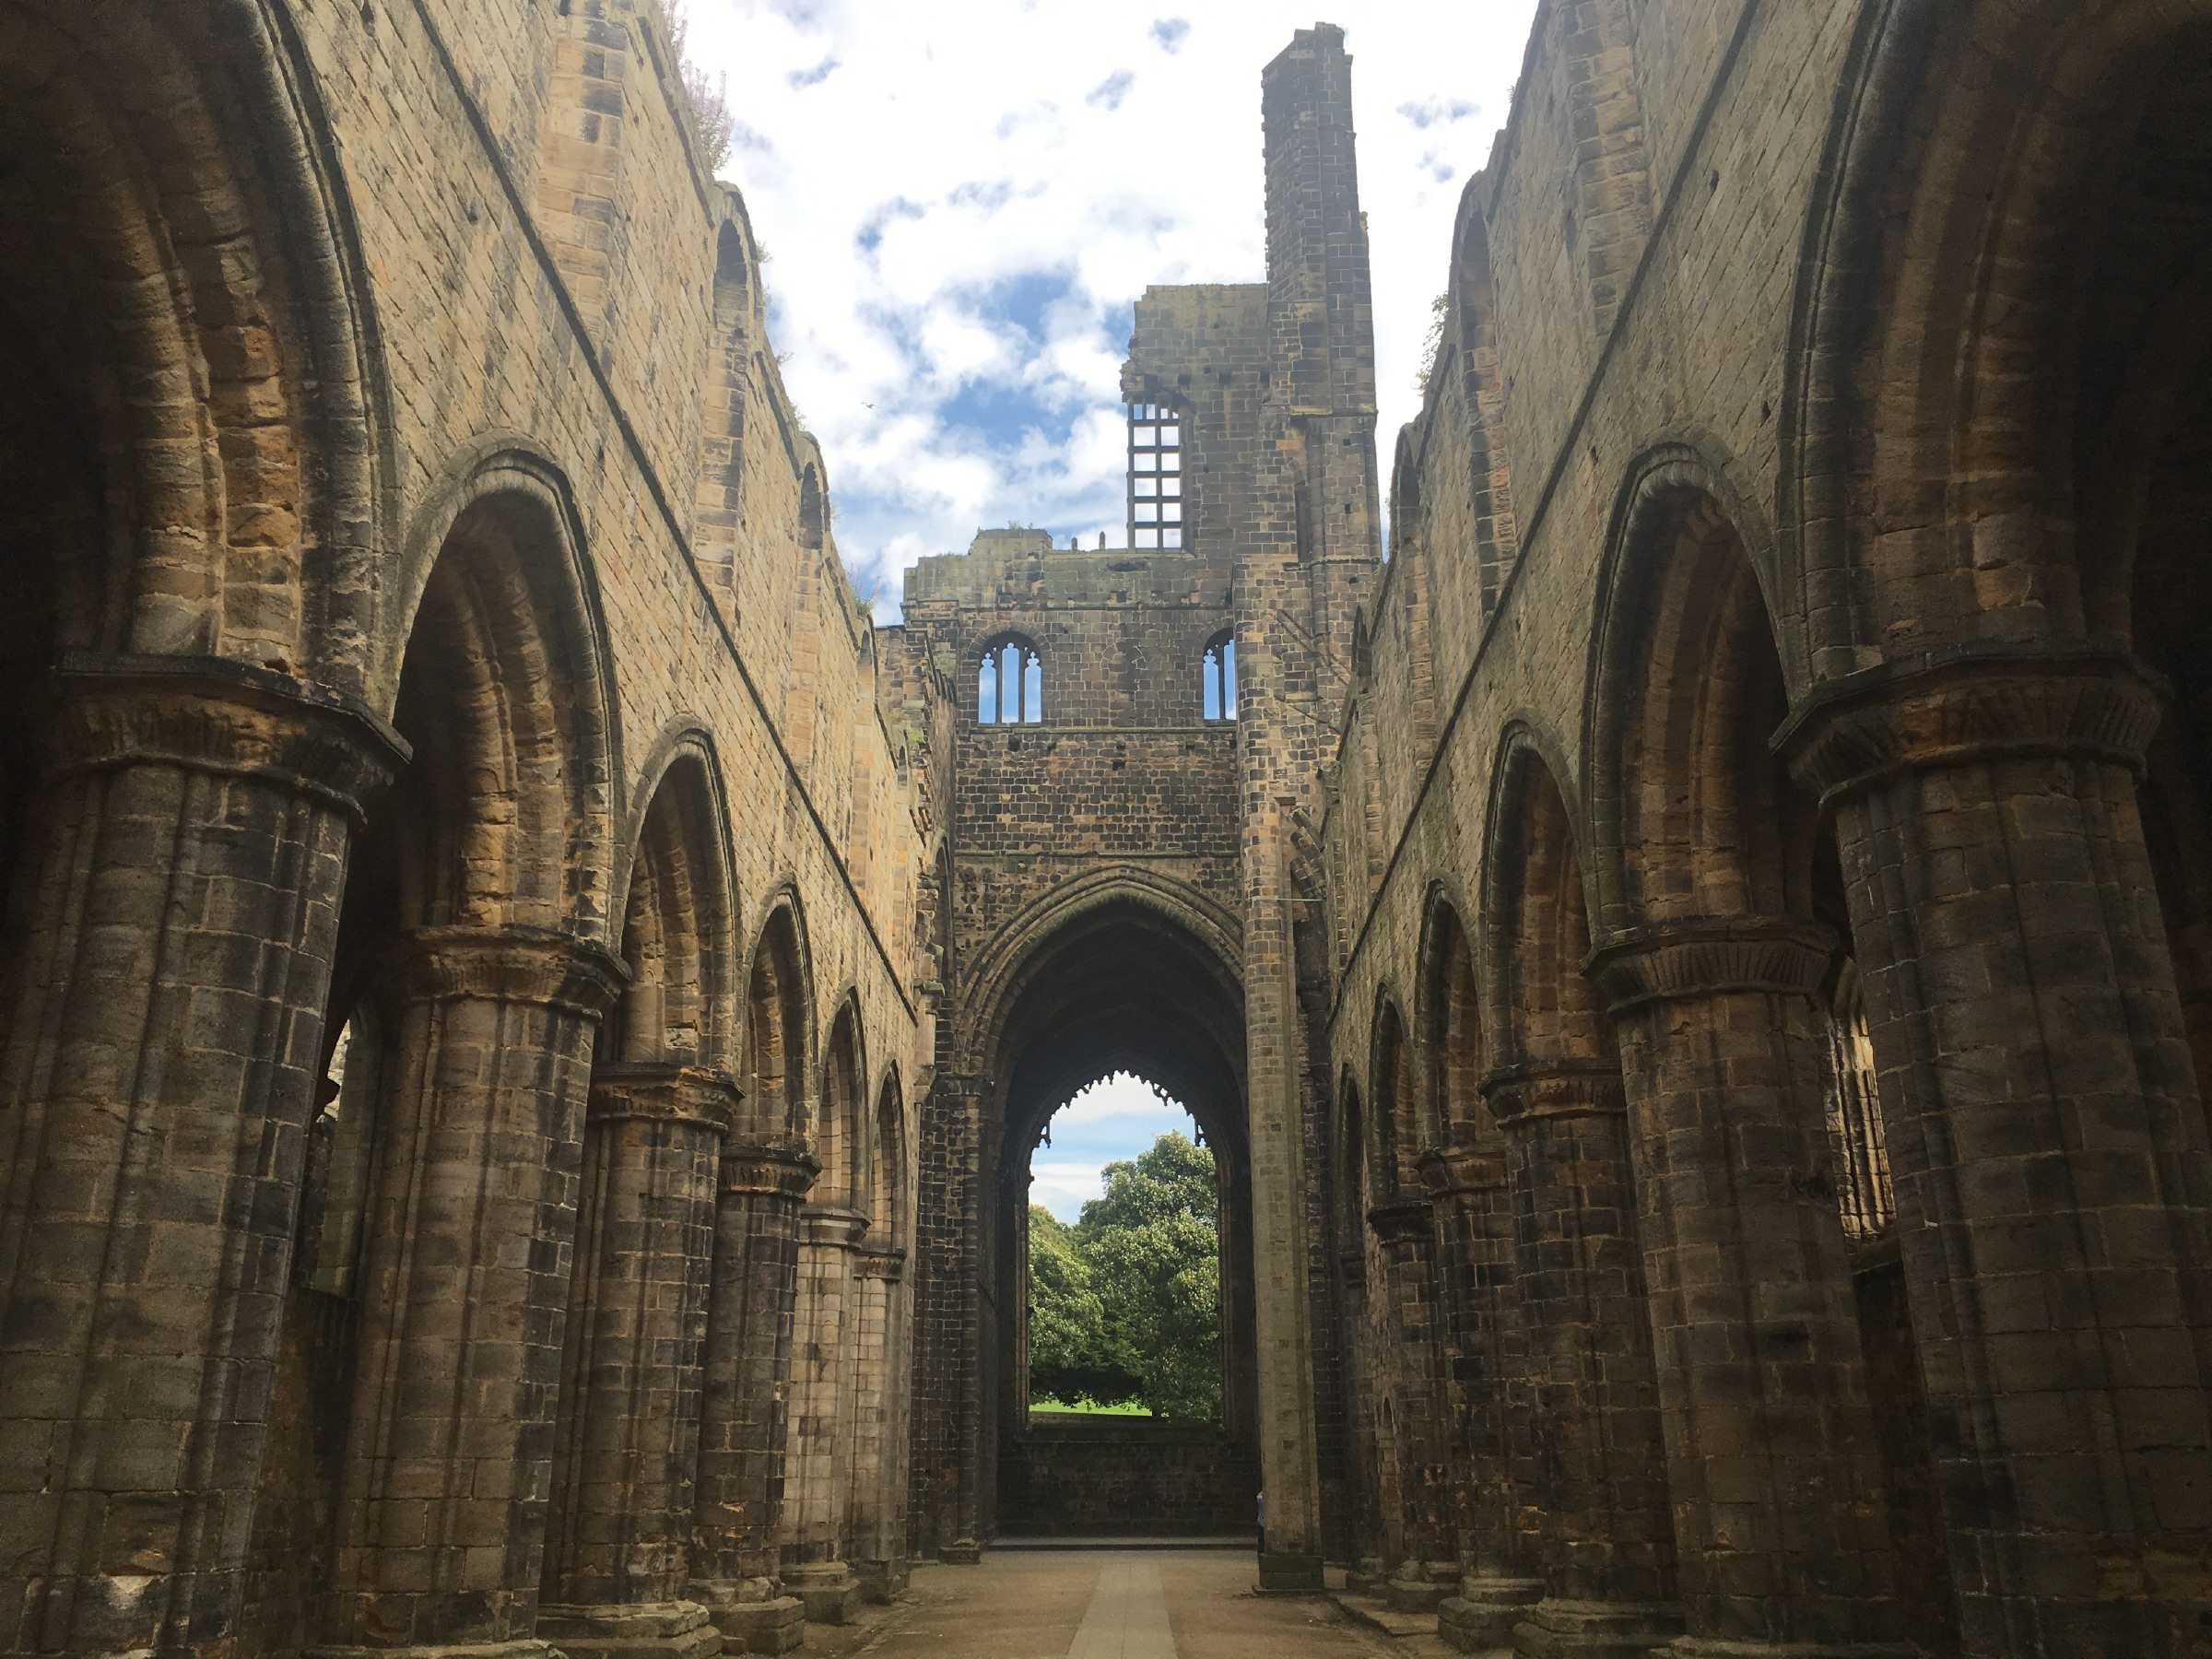 Monthly Car Insurance >> Kirkstall Abbey | Leeds, England Attractions - Lonely Planet